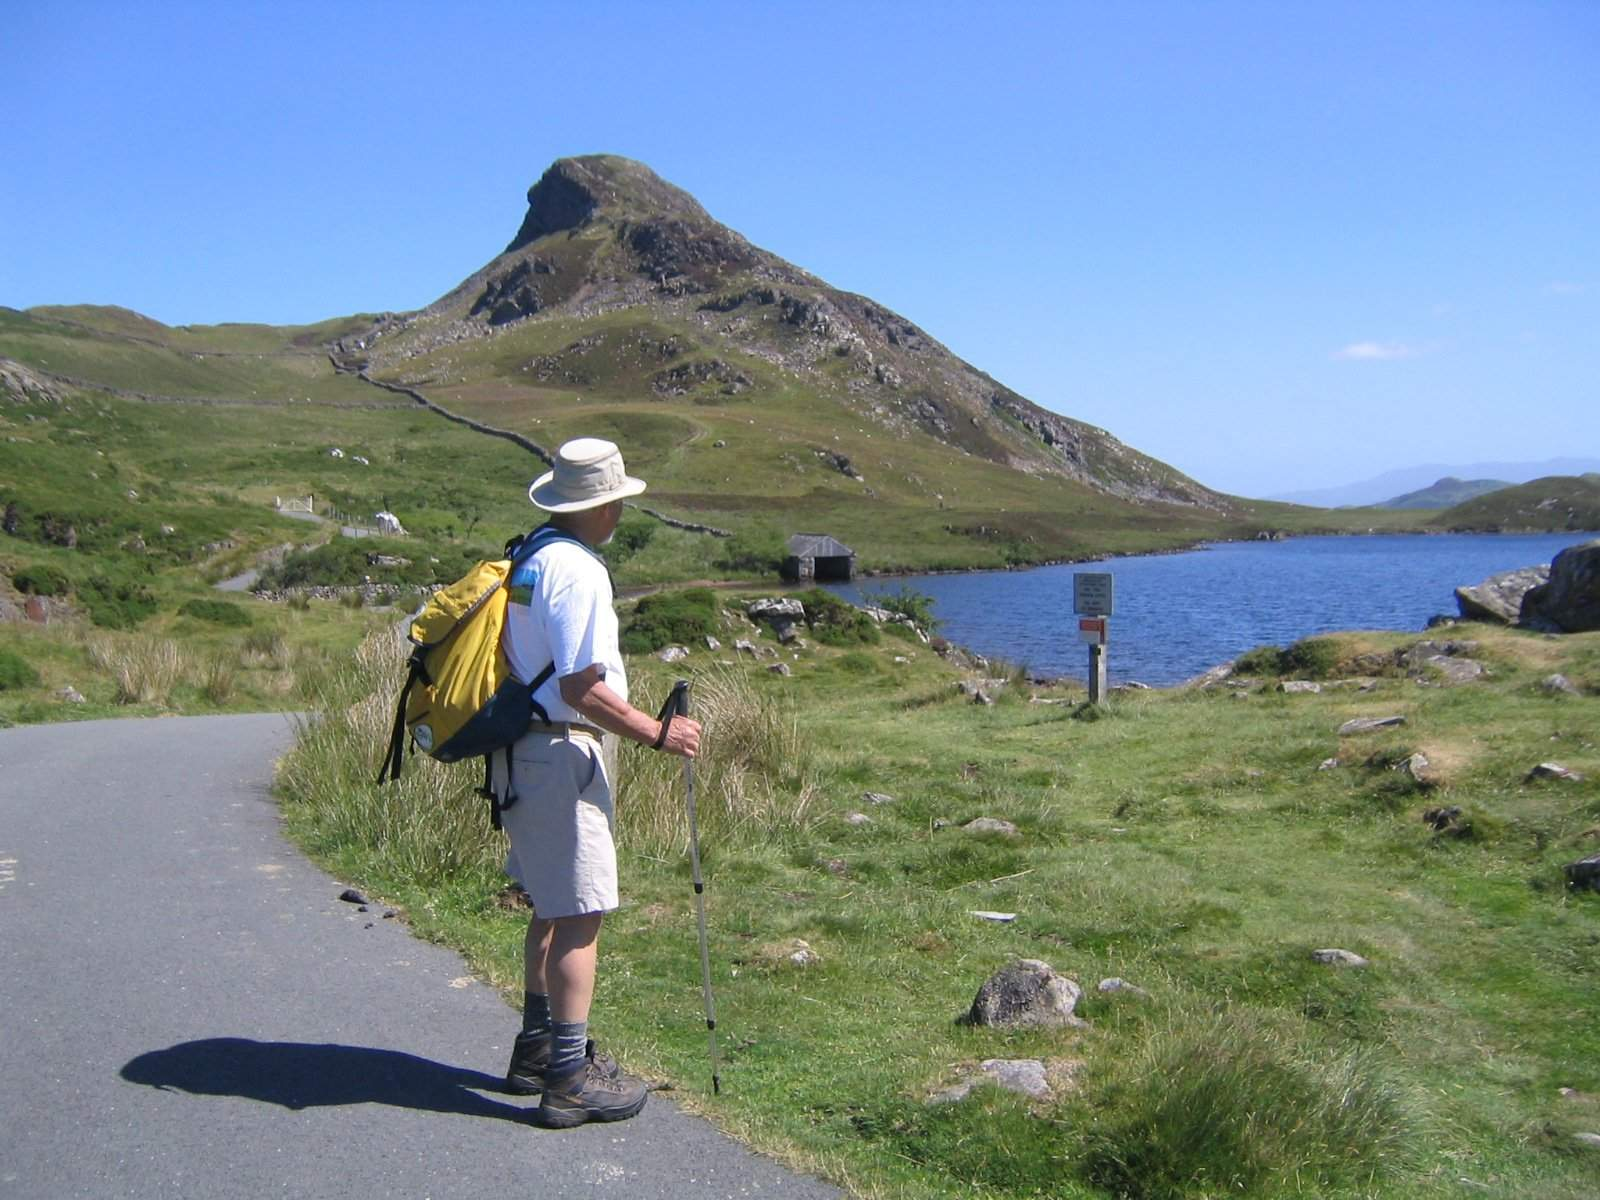 One of our walkers admiring lake